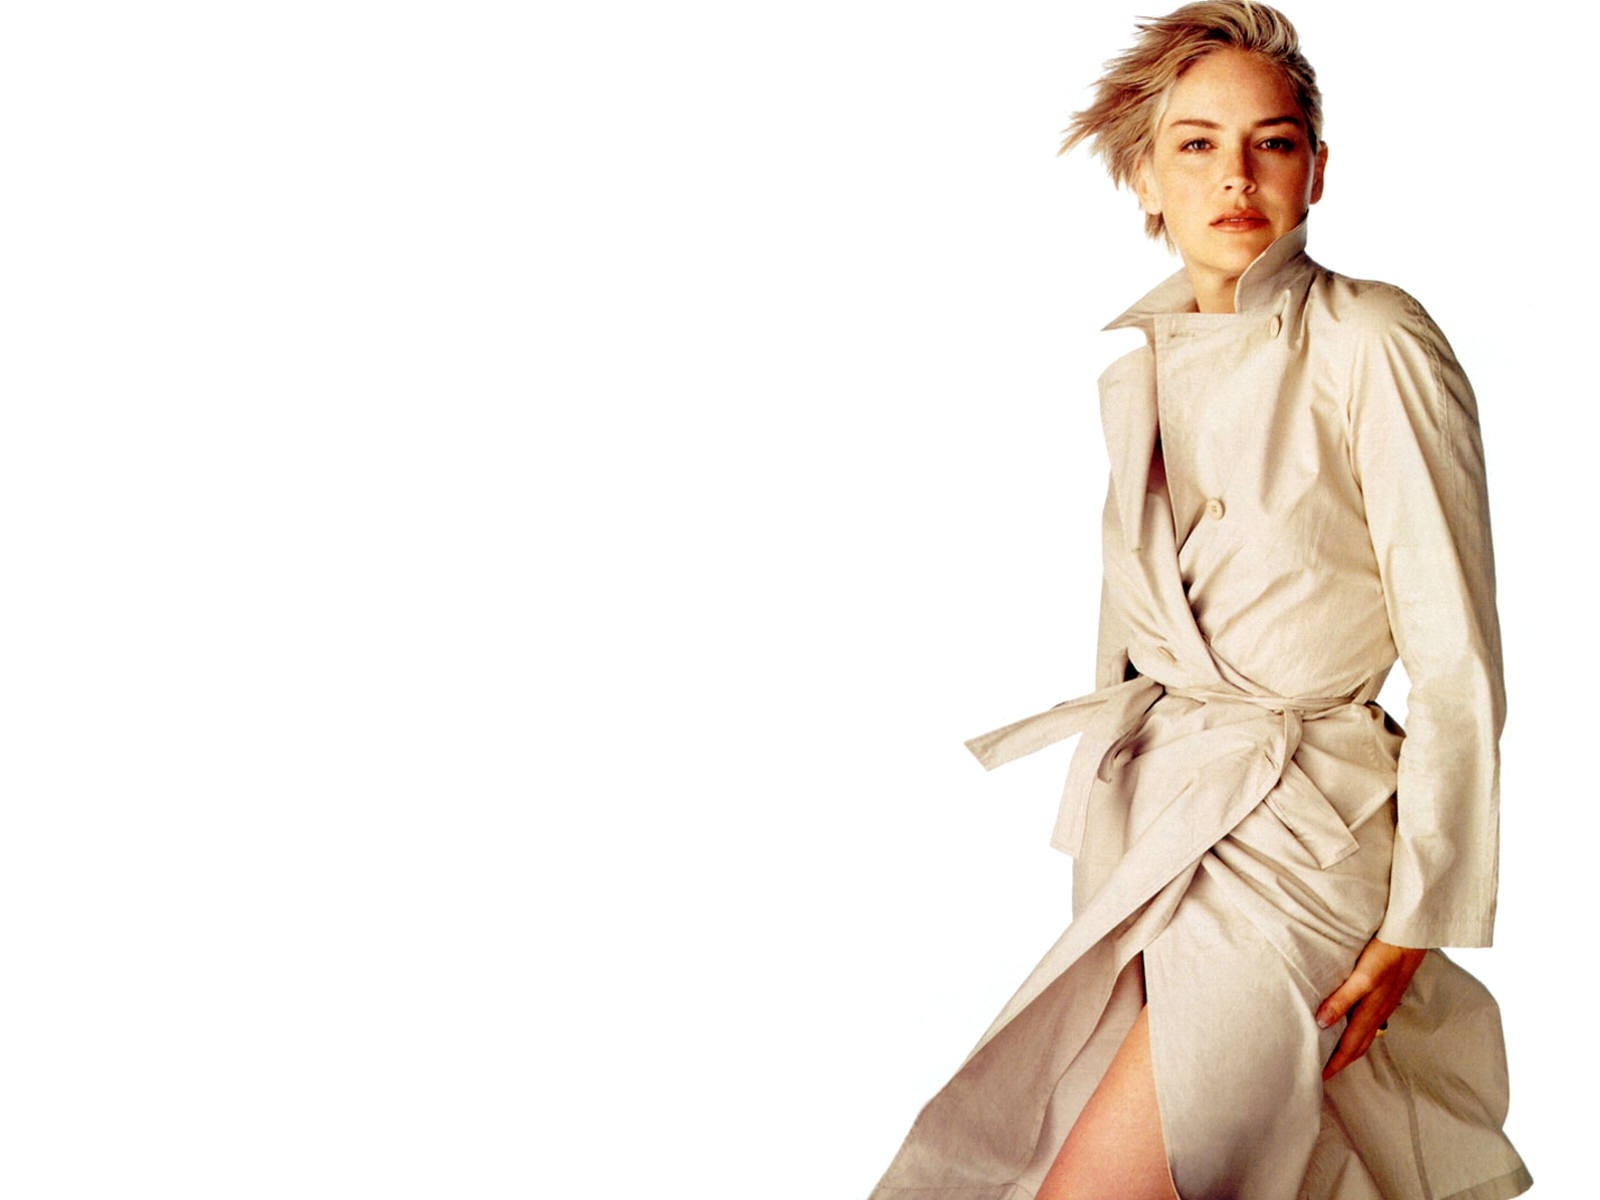 Wallpaper di Sharon Stone, in versione elegante